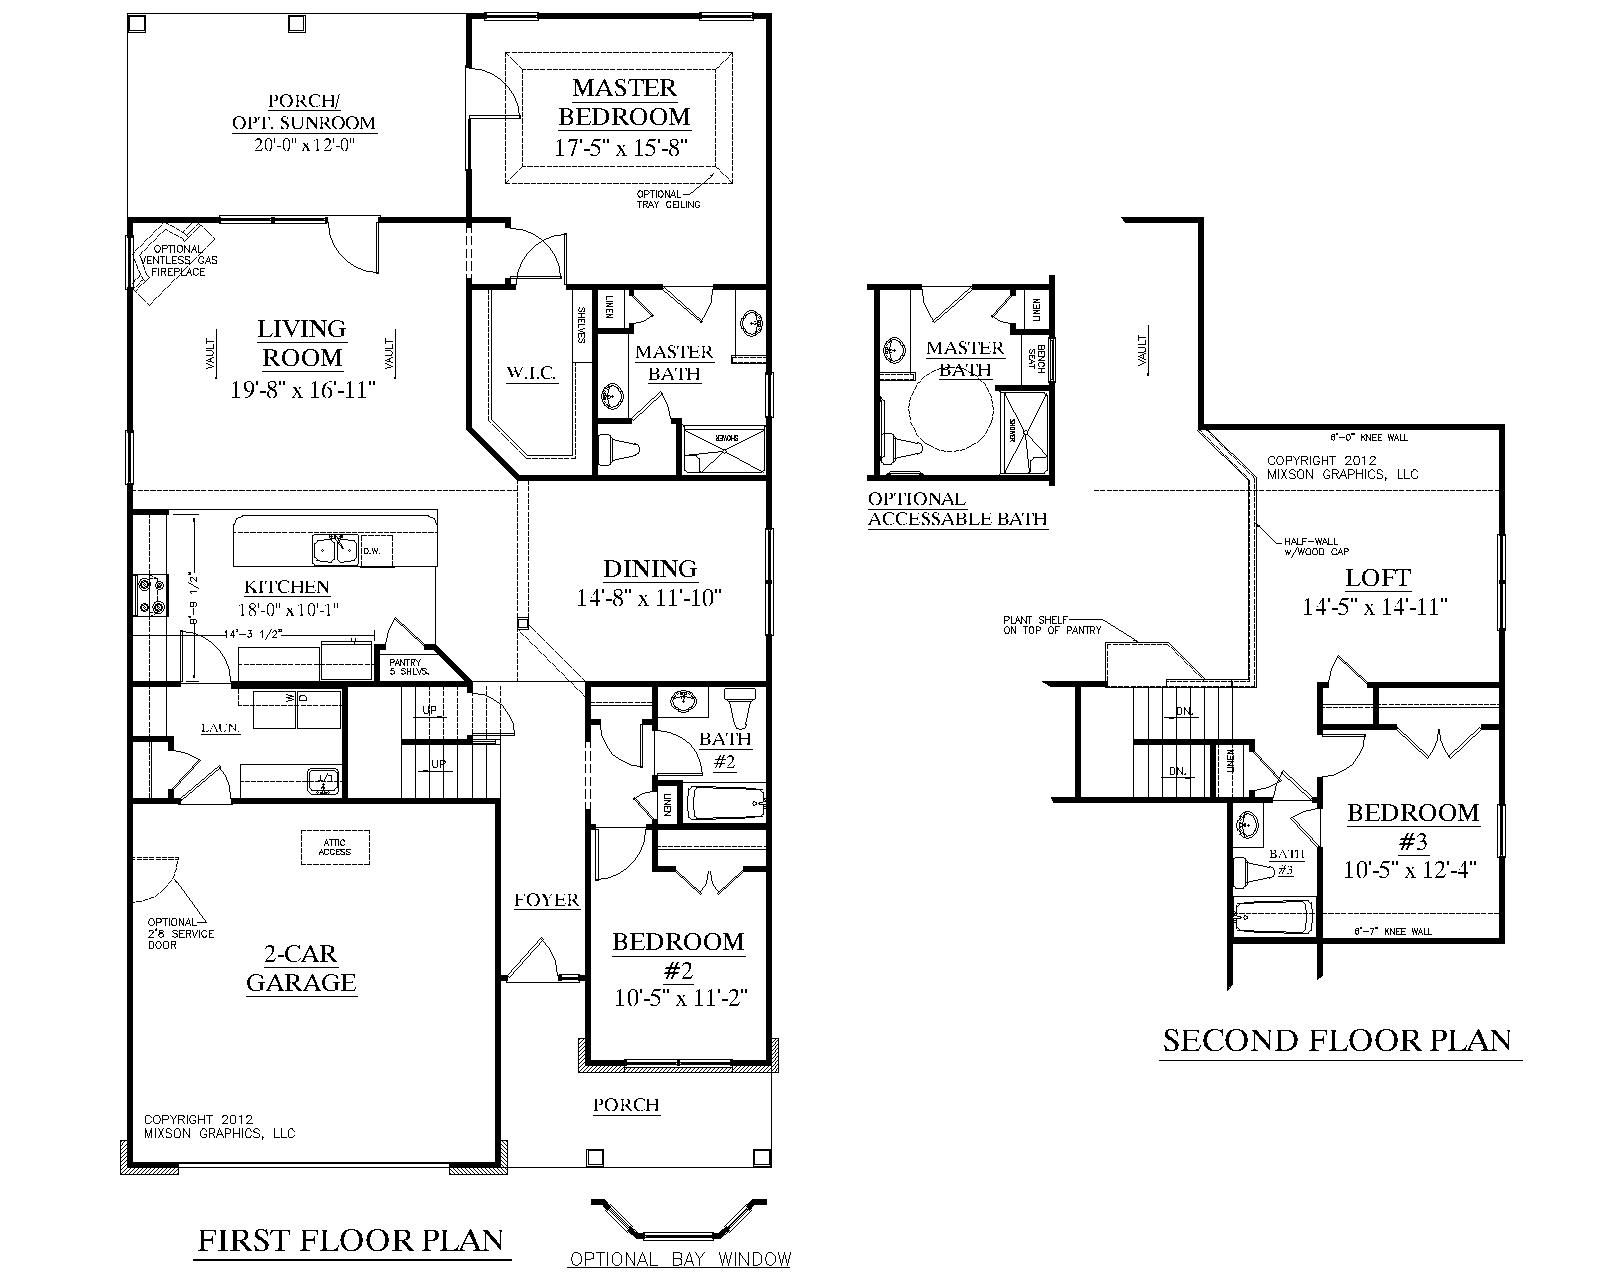 House plan 2224 kingstree floor plan traditional 1 1 2 for One and one half story house plans